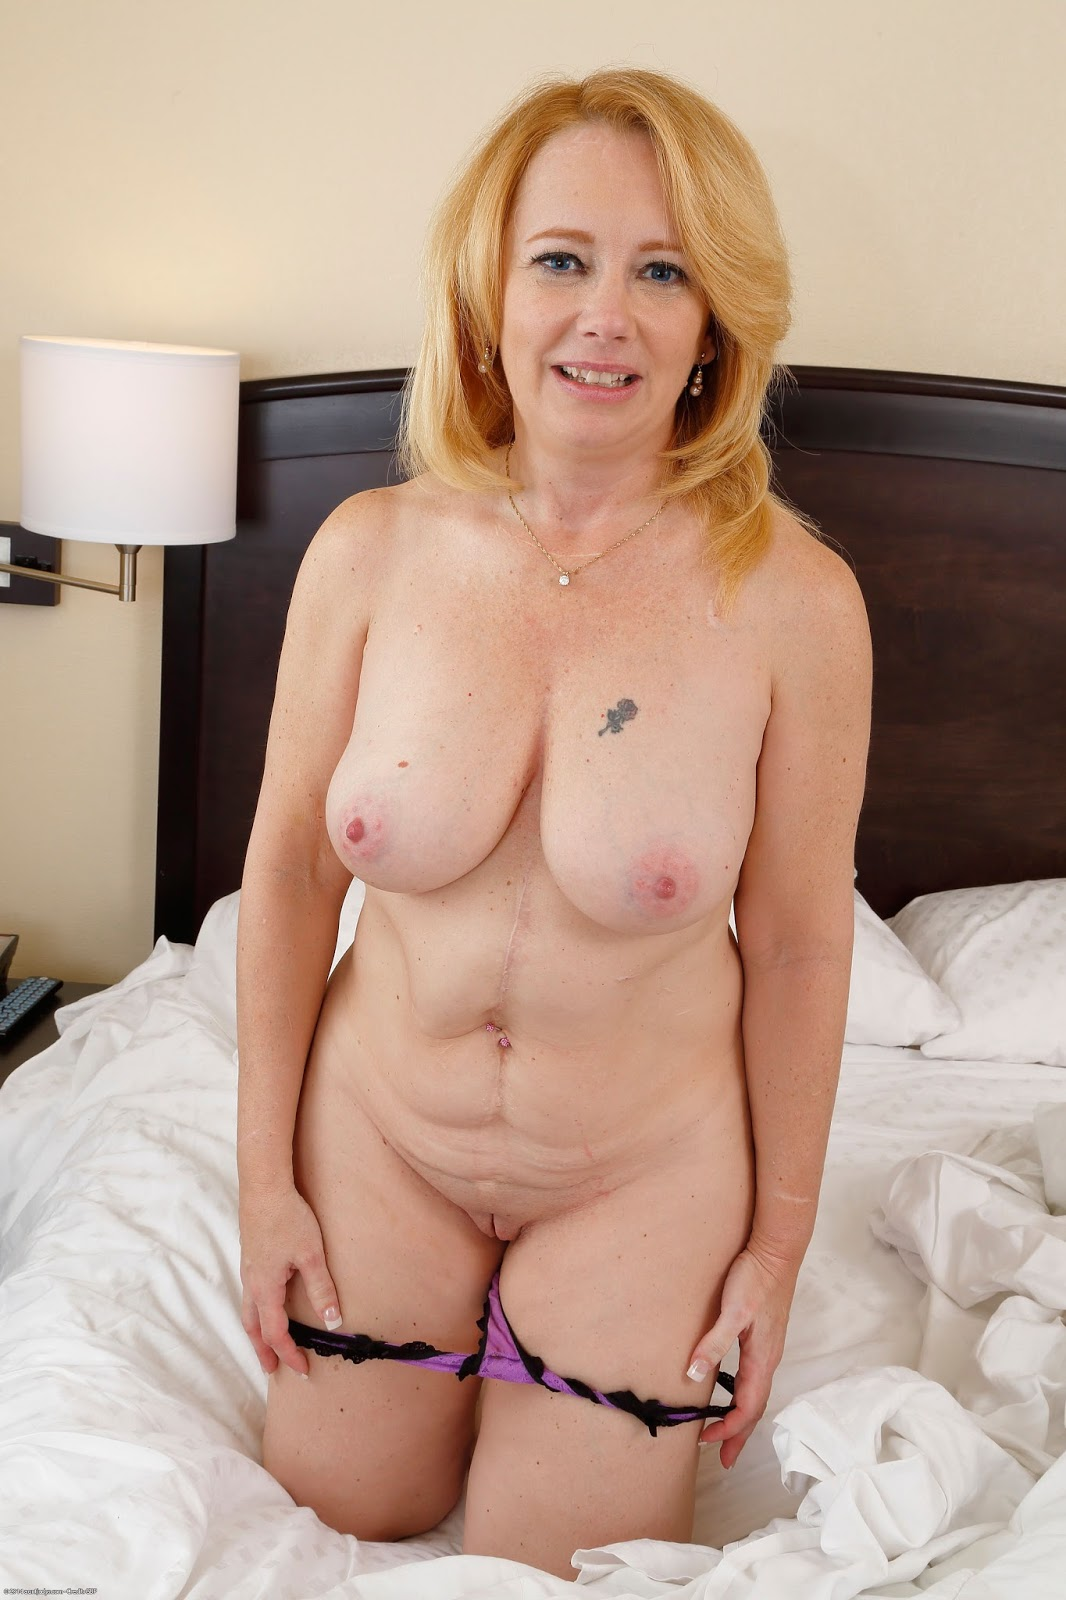 Archiveoffoldwomenblogspotcom Mature Naked Women-6181